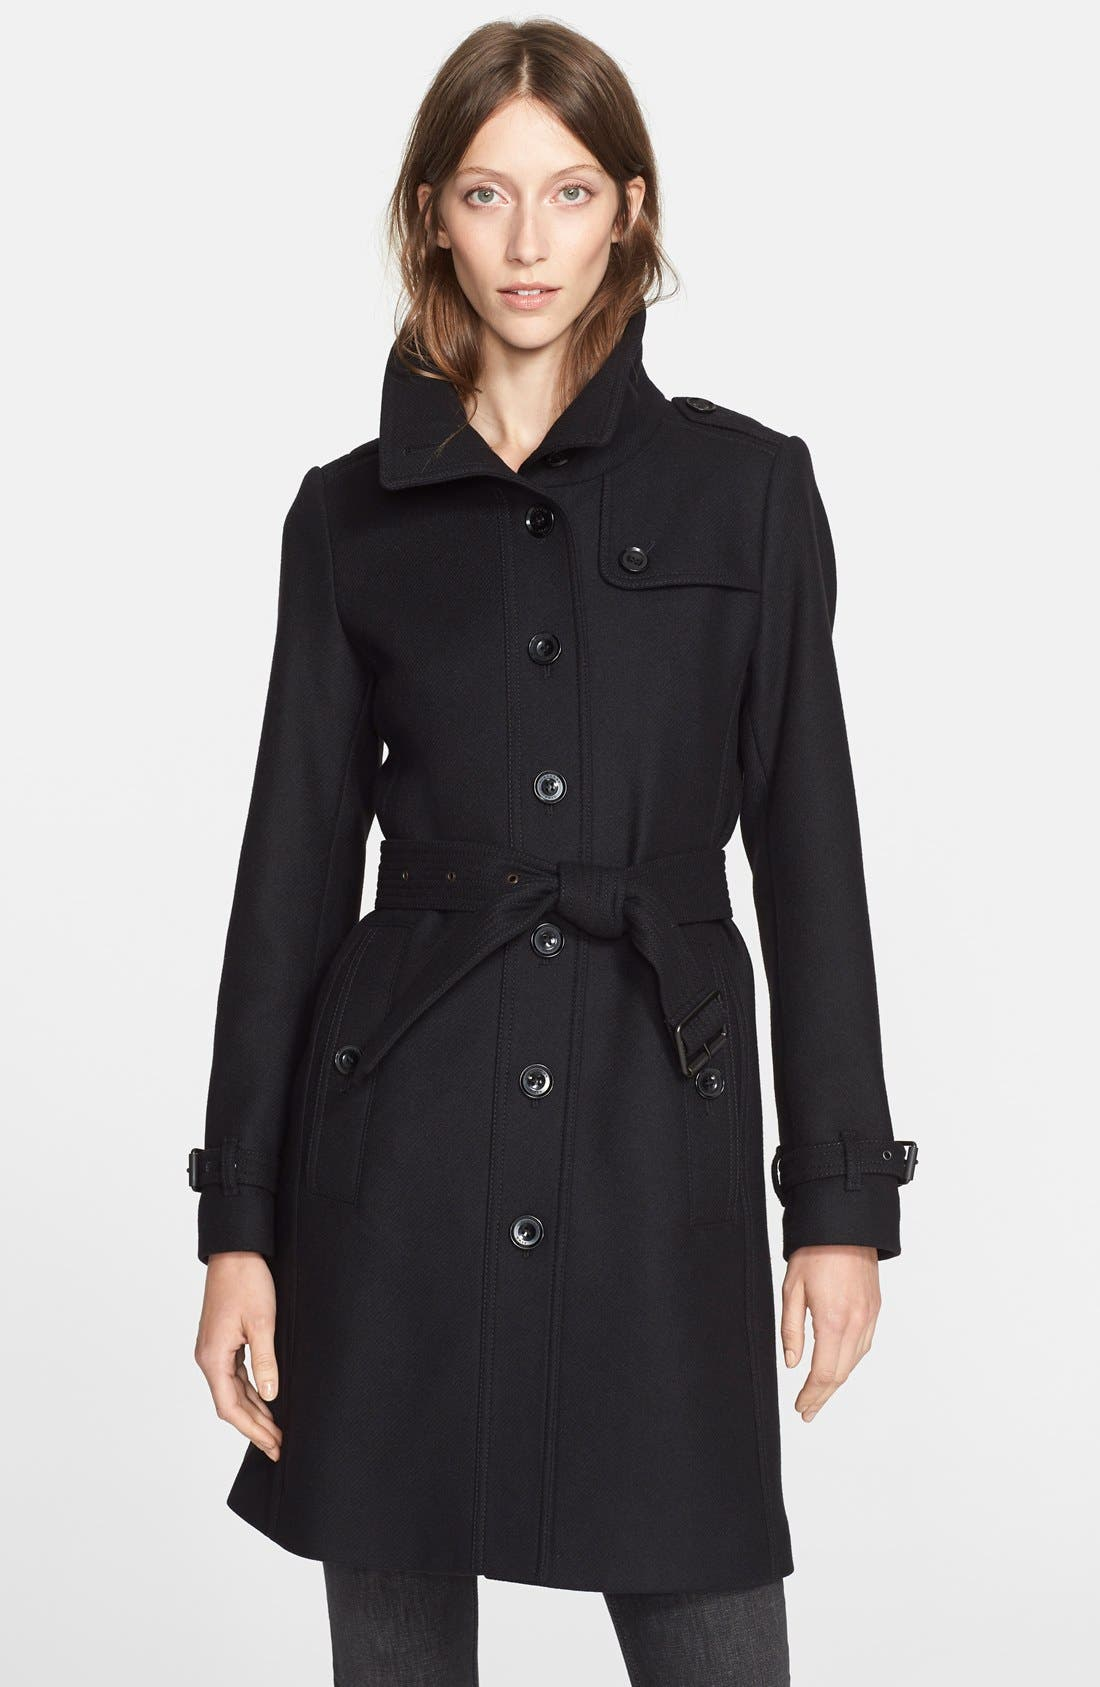 Alternate Image 1 Selected - Burberry Brit 'Rushfield' Wool Blend Single Breasted Coat